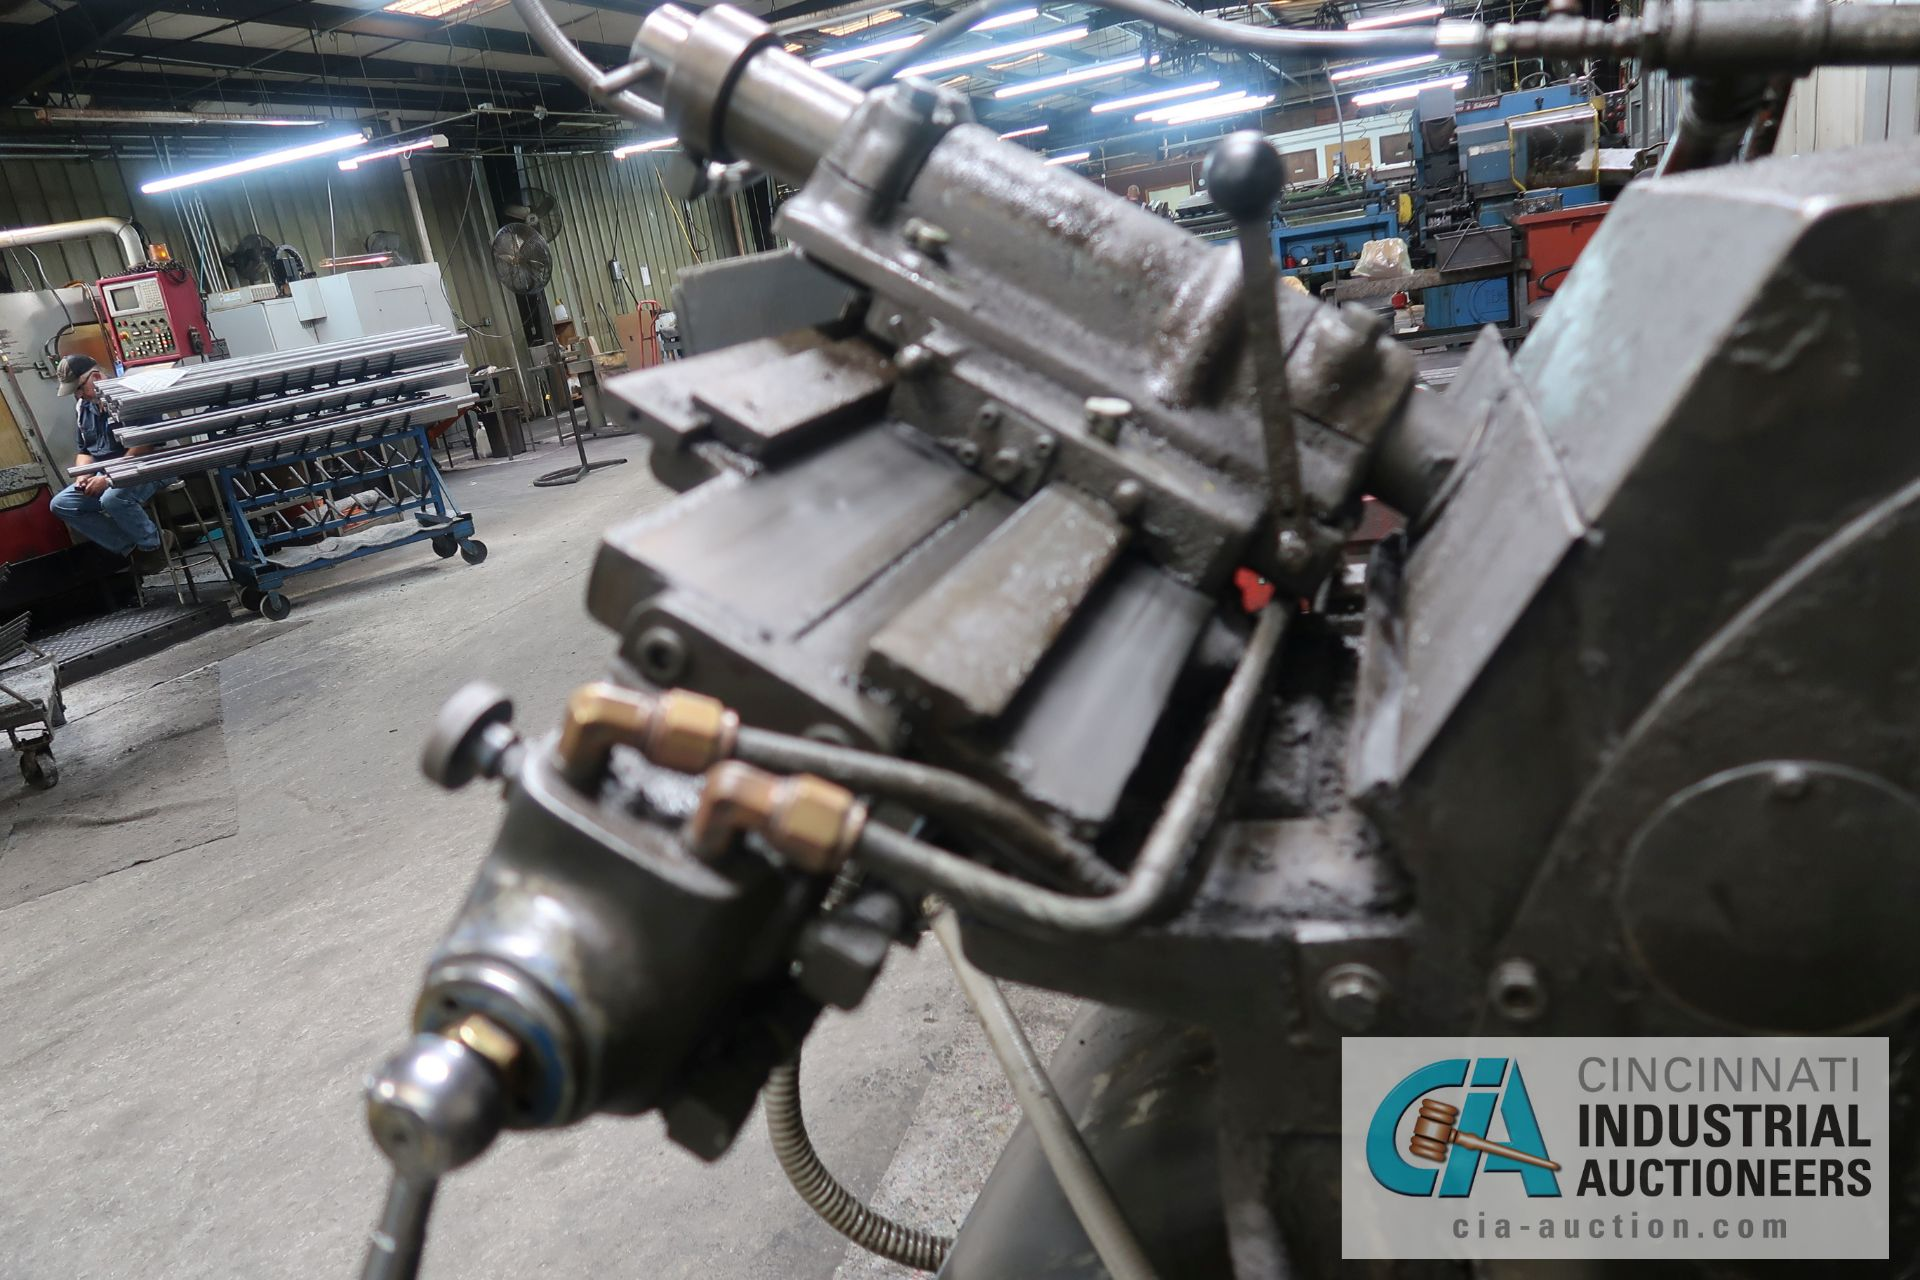 Lot 25 - CINCINNATI MODEL 2 CENTERLESS GRINDER; S/N 2M2H1L-2160 WITH INFEED AND OUTFEED CONVEYORS